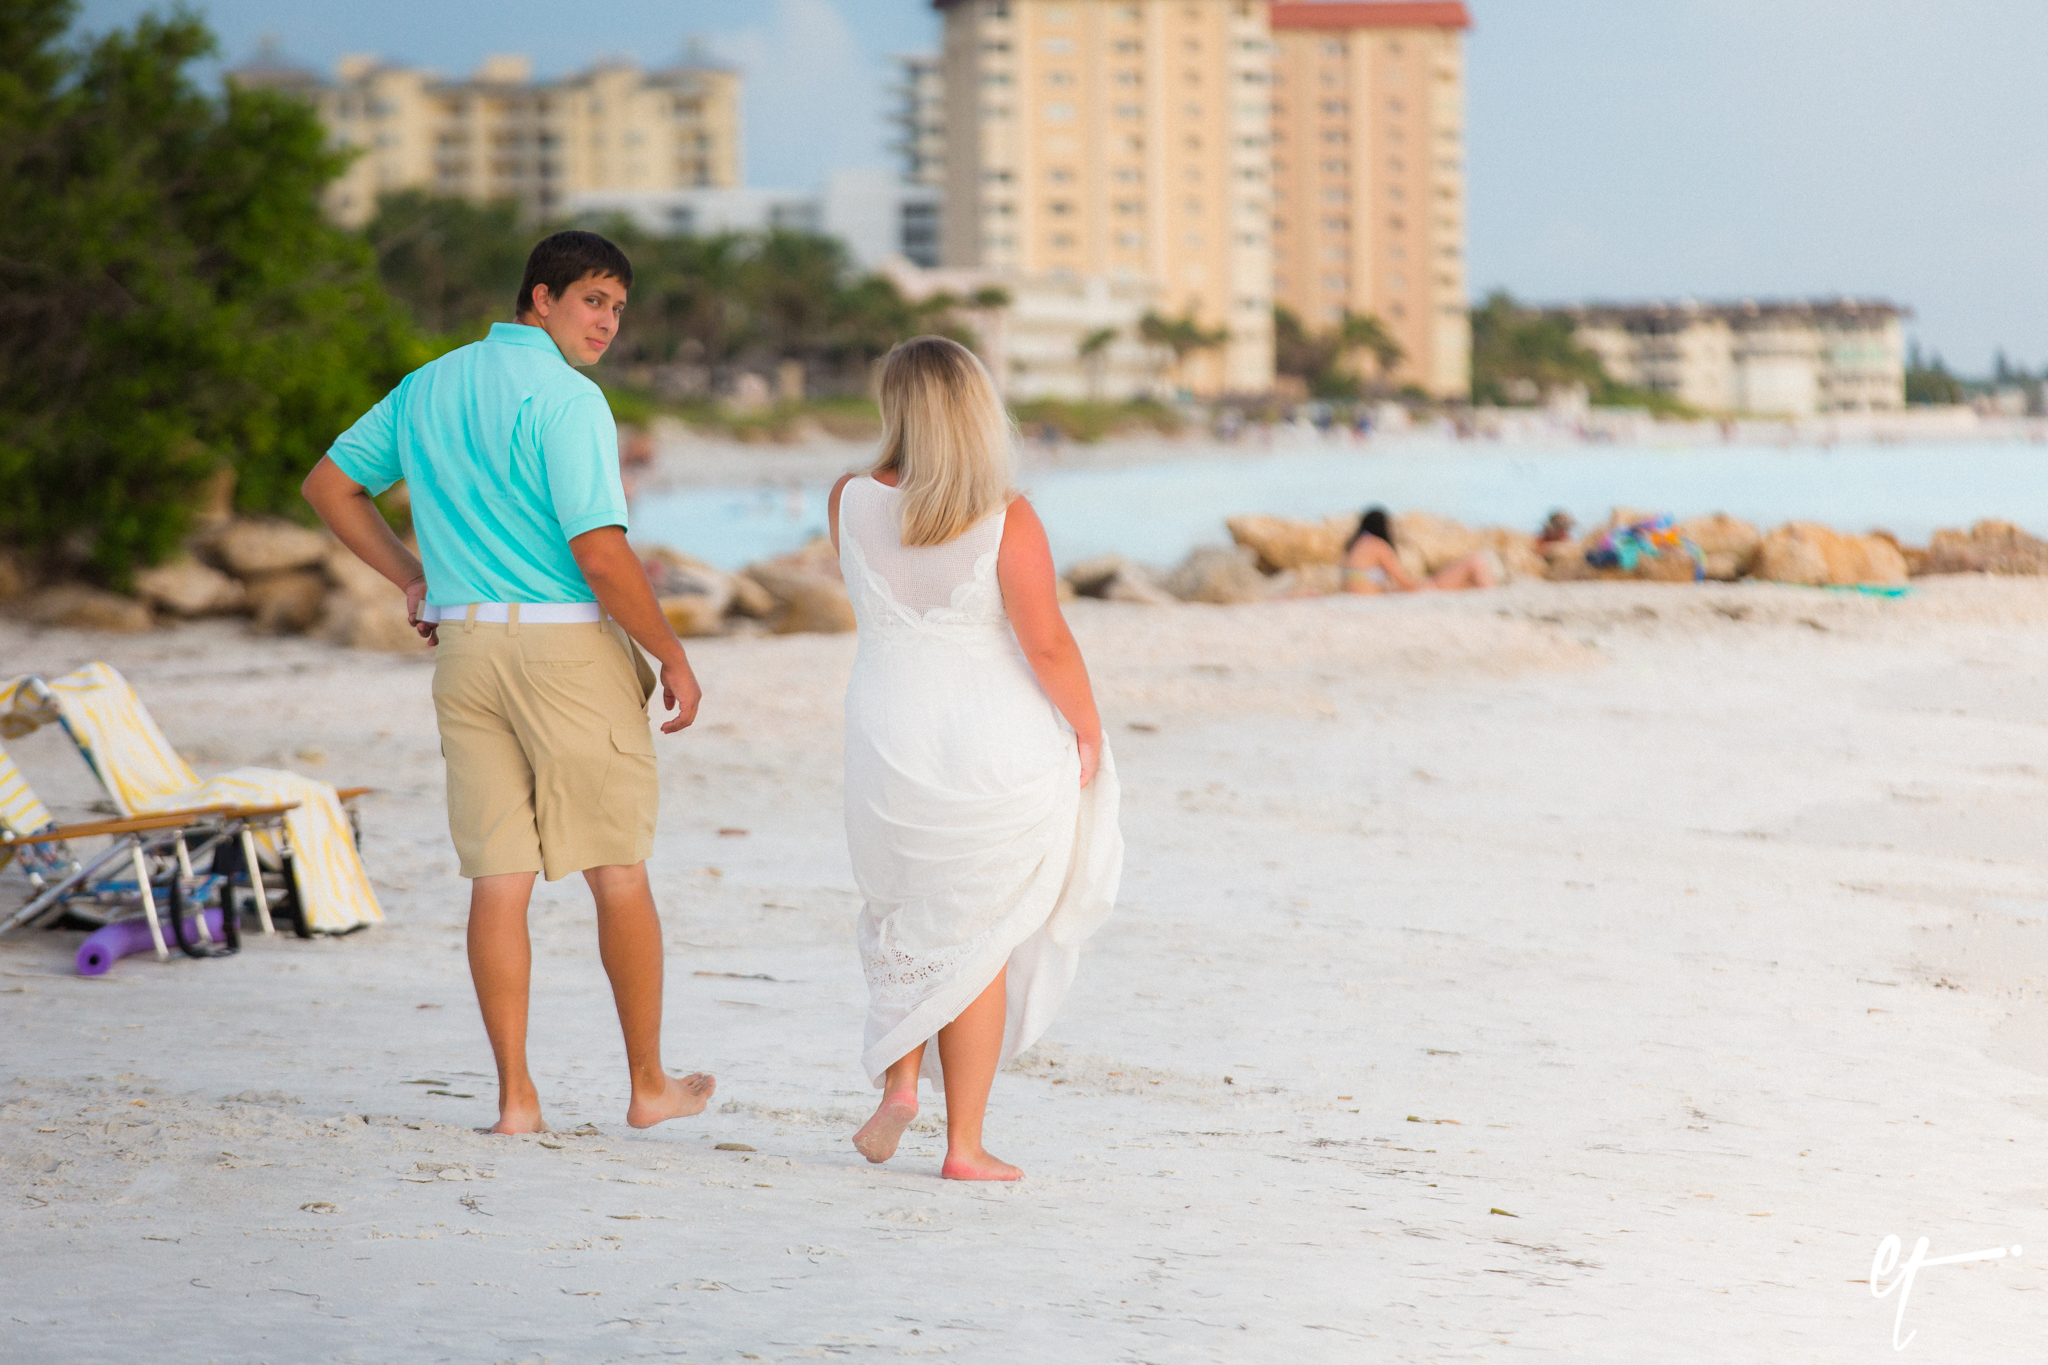 Surprise_Proposal_Sarasota_Lido_Key_Photography_Florida-2.jpg